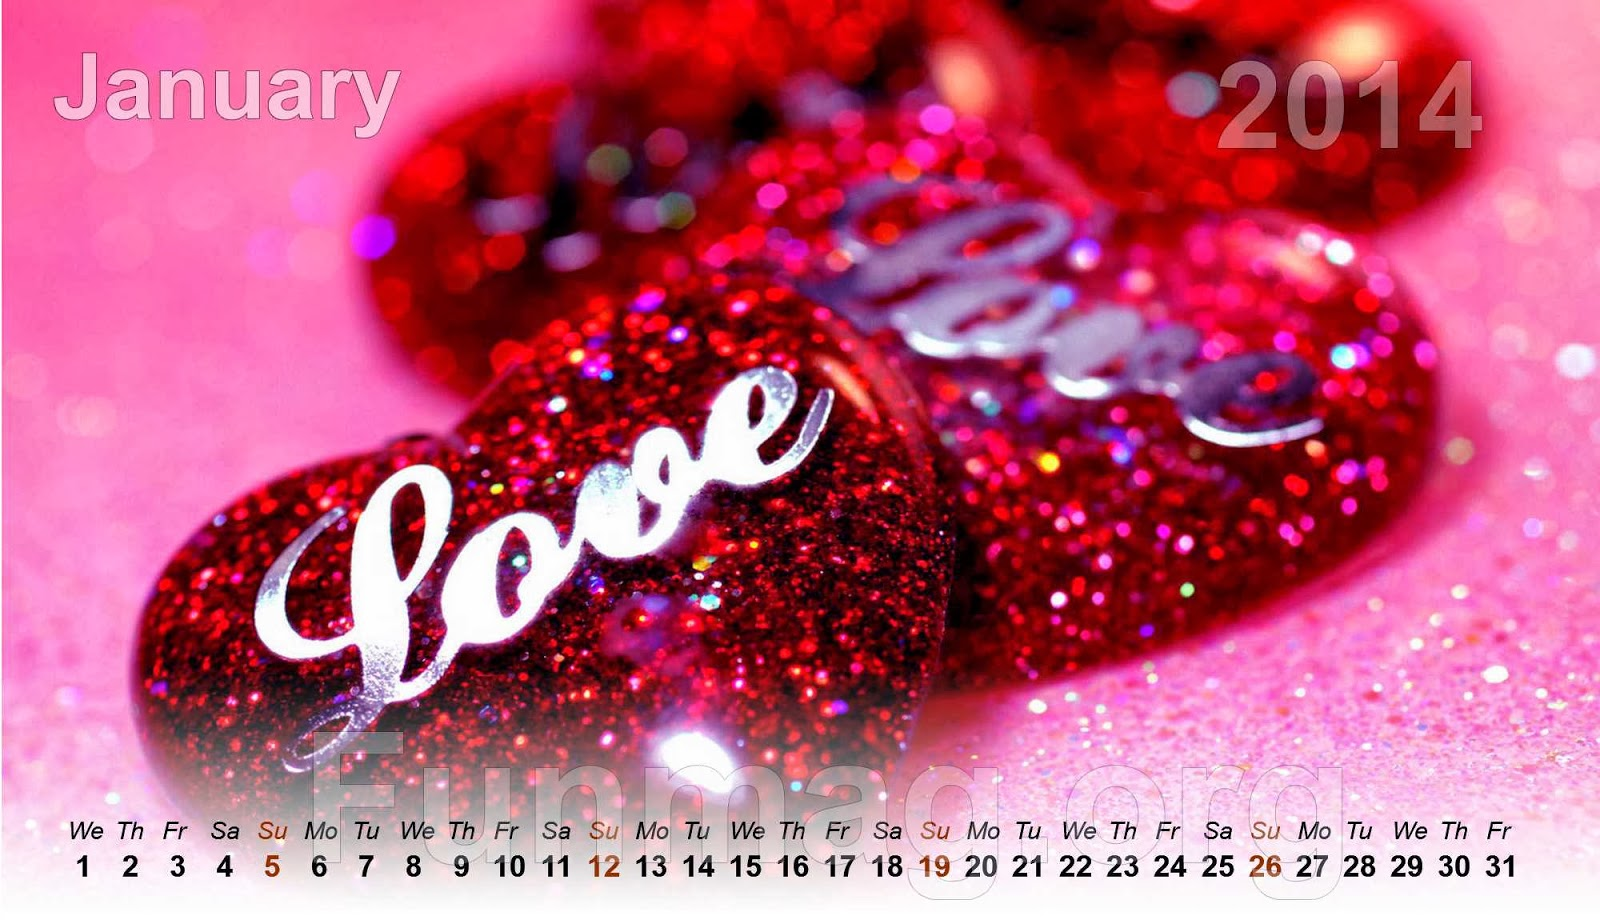 http://www.funmag.org/pictures-mag/calendar/beautiful-love-calendar-2014/